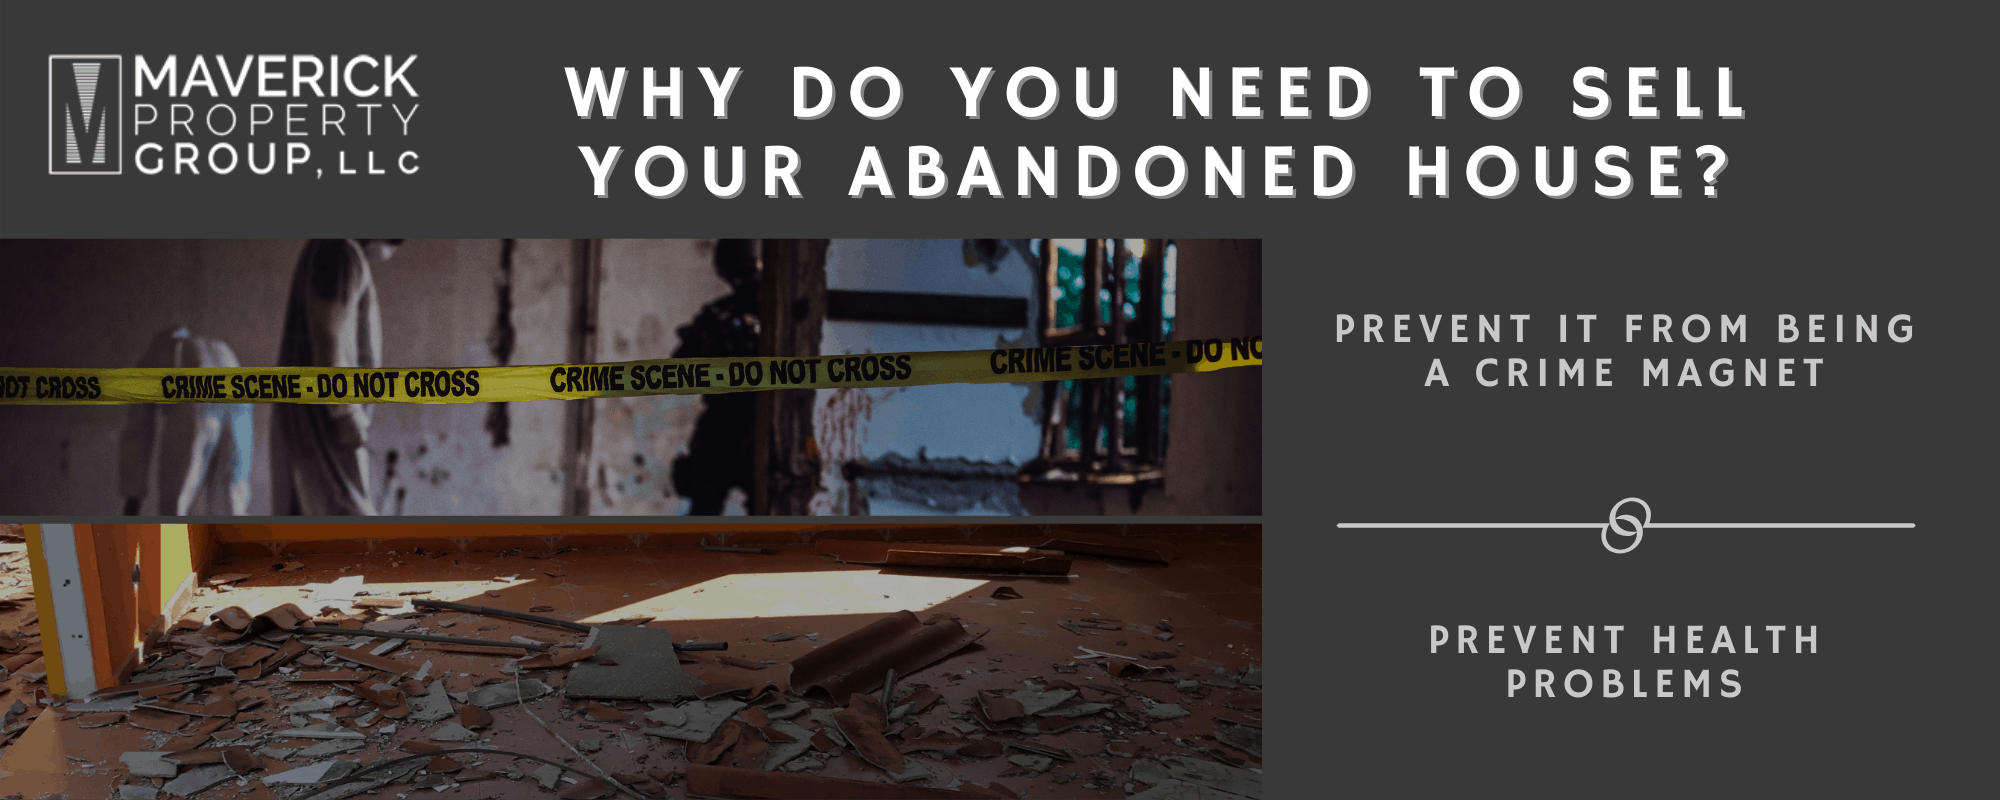 Why Do You Need To Sell Your Abandoned House